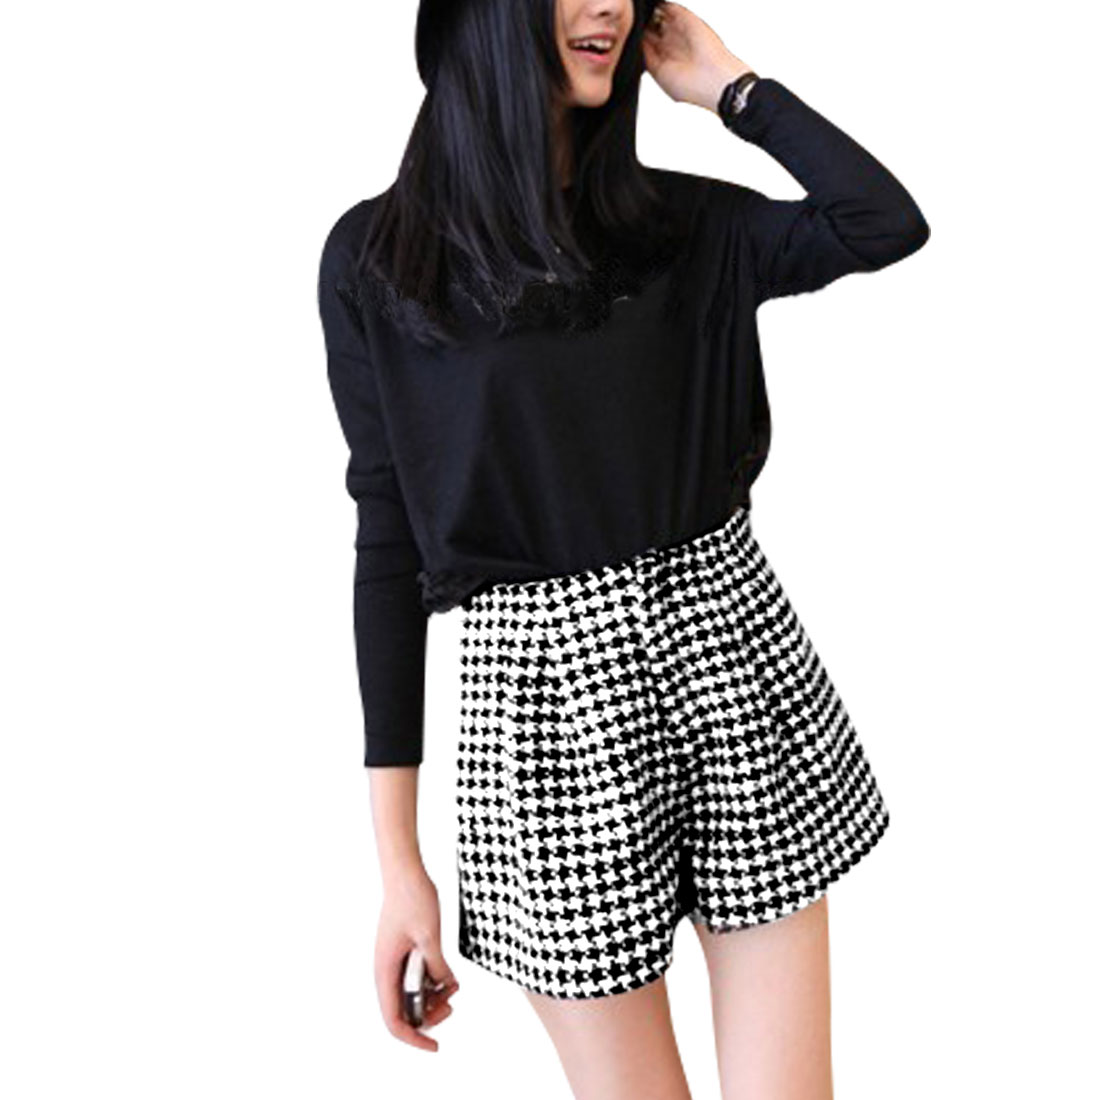 Ladies Black White Houndstooth Pattern Casual Zip Closure Back Shorts XS